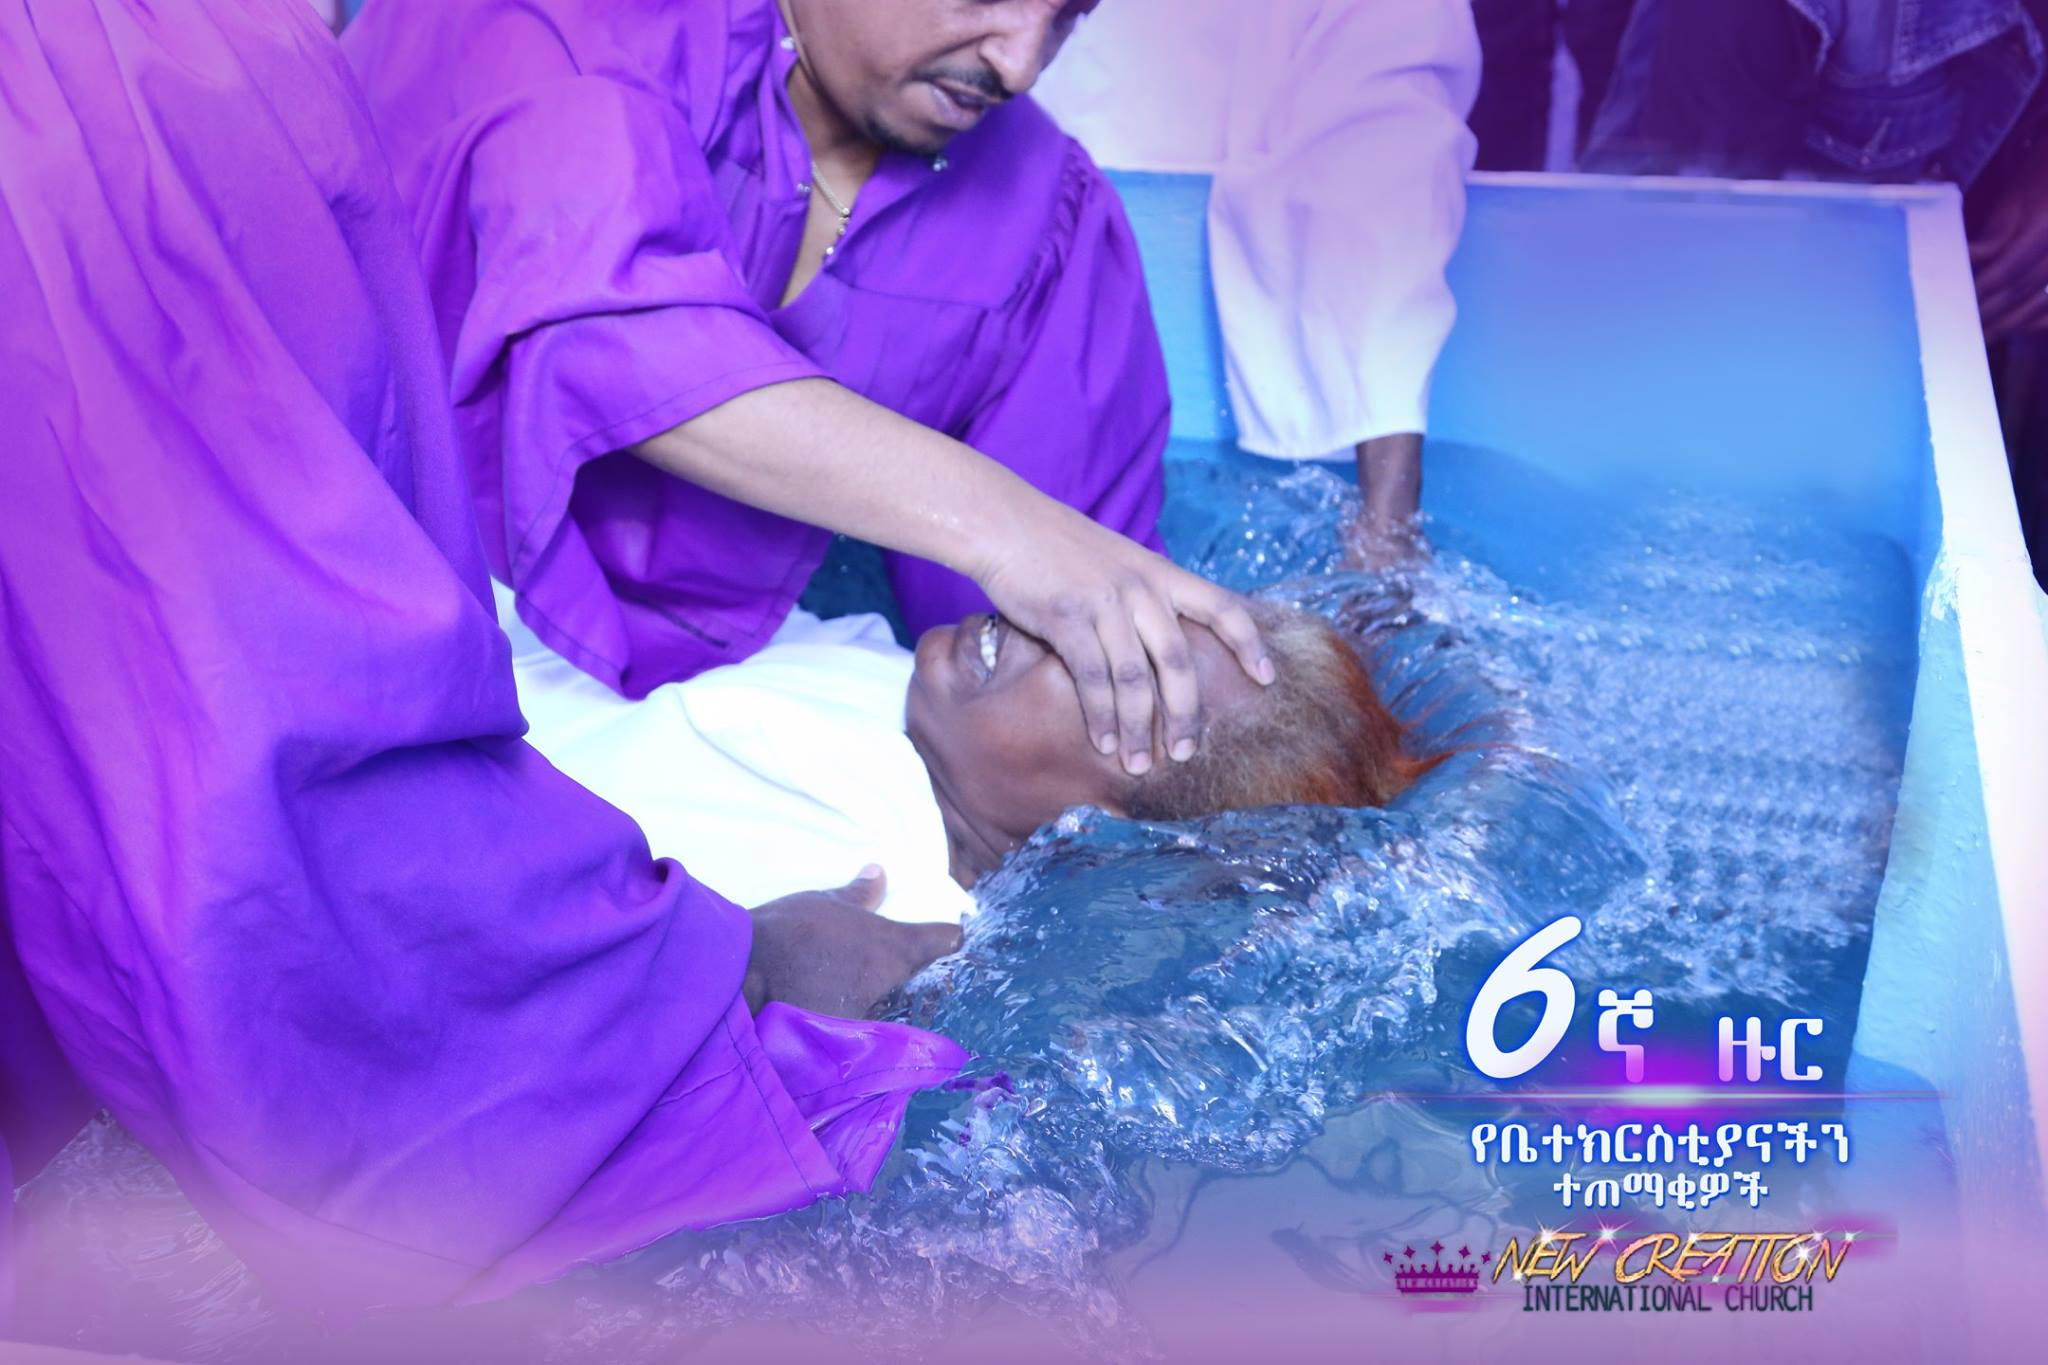 New Creation church ethiopia 6th Round Baptism (4)